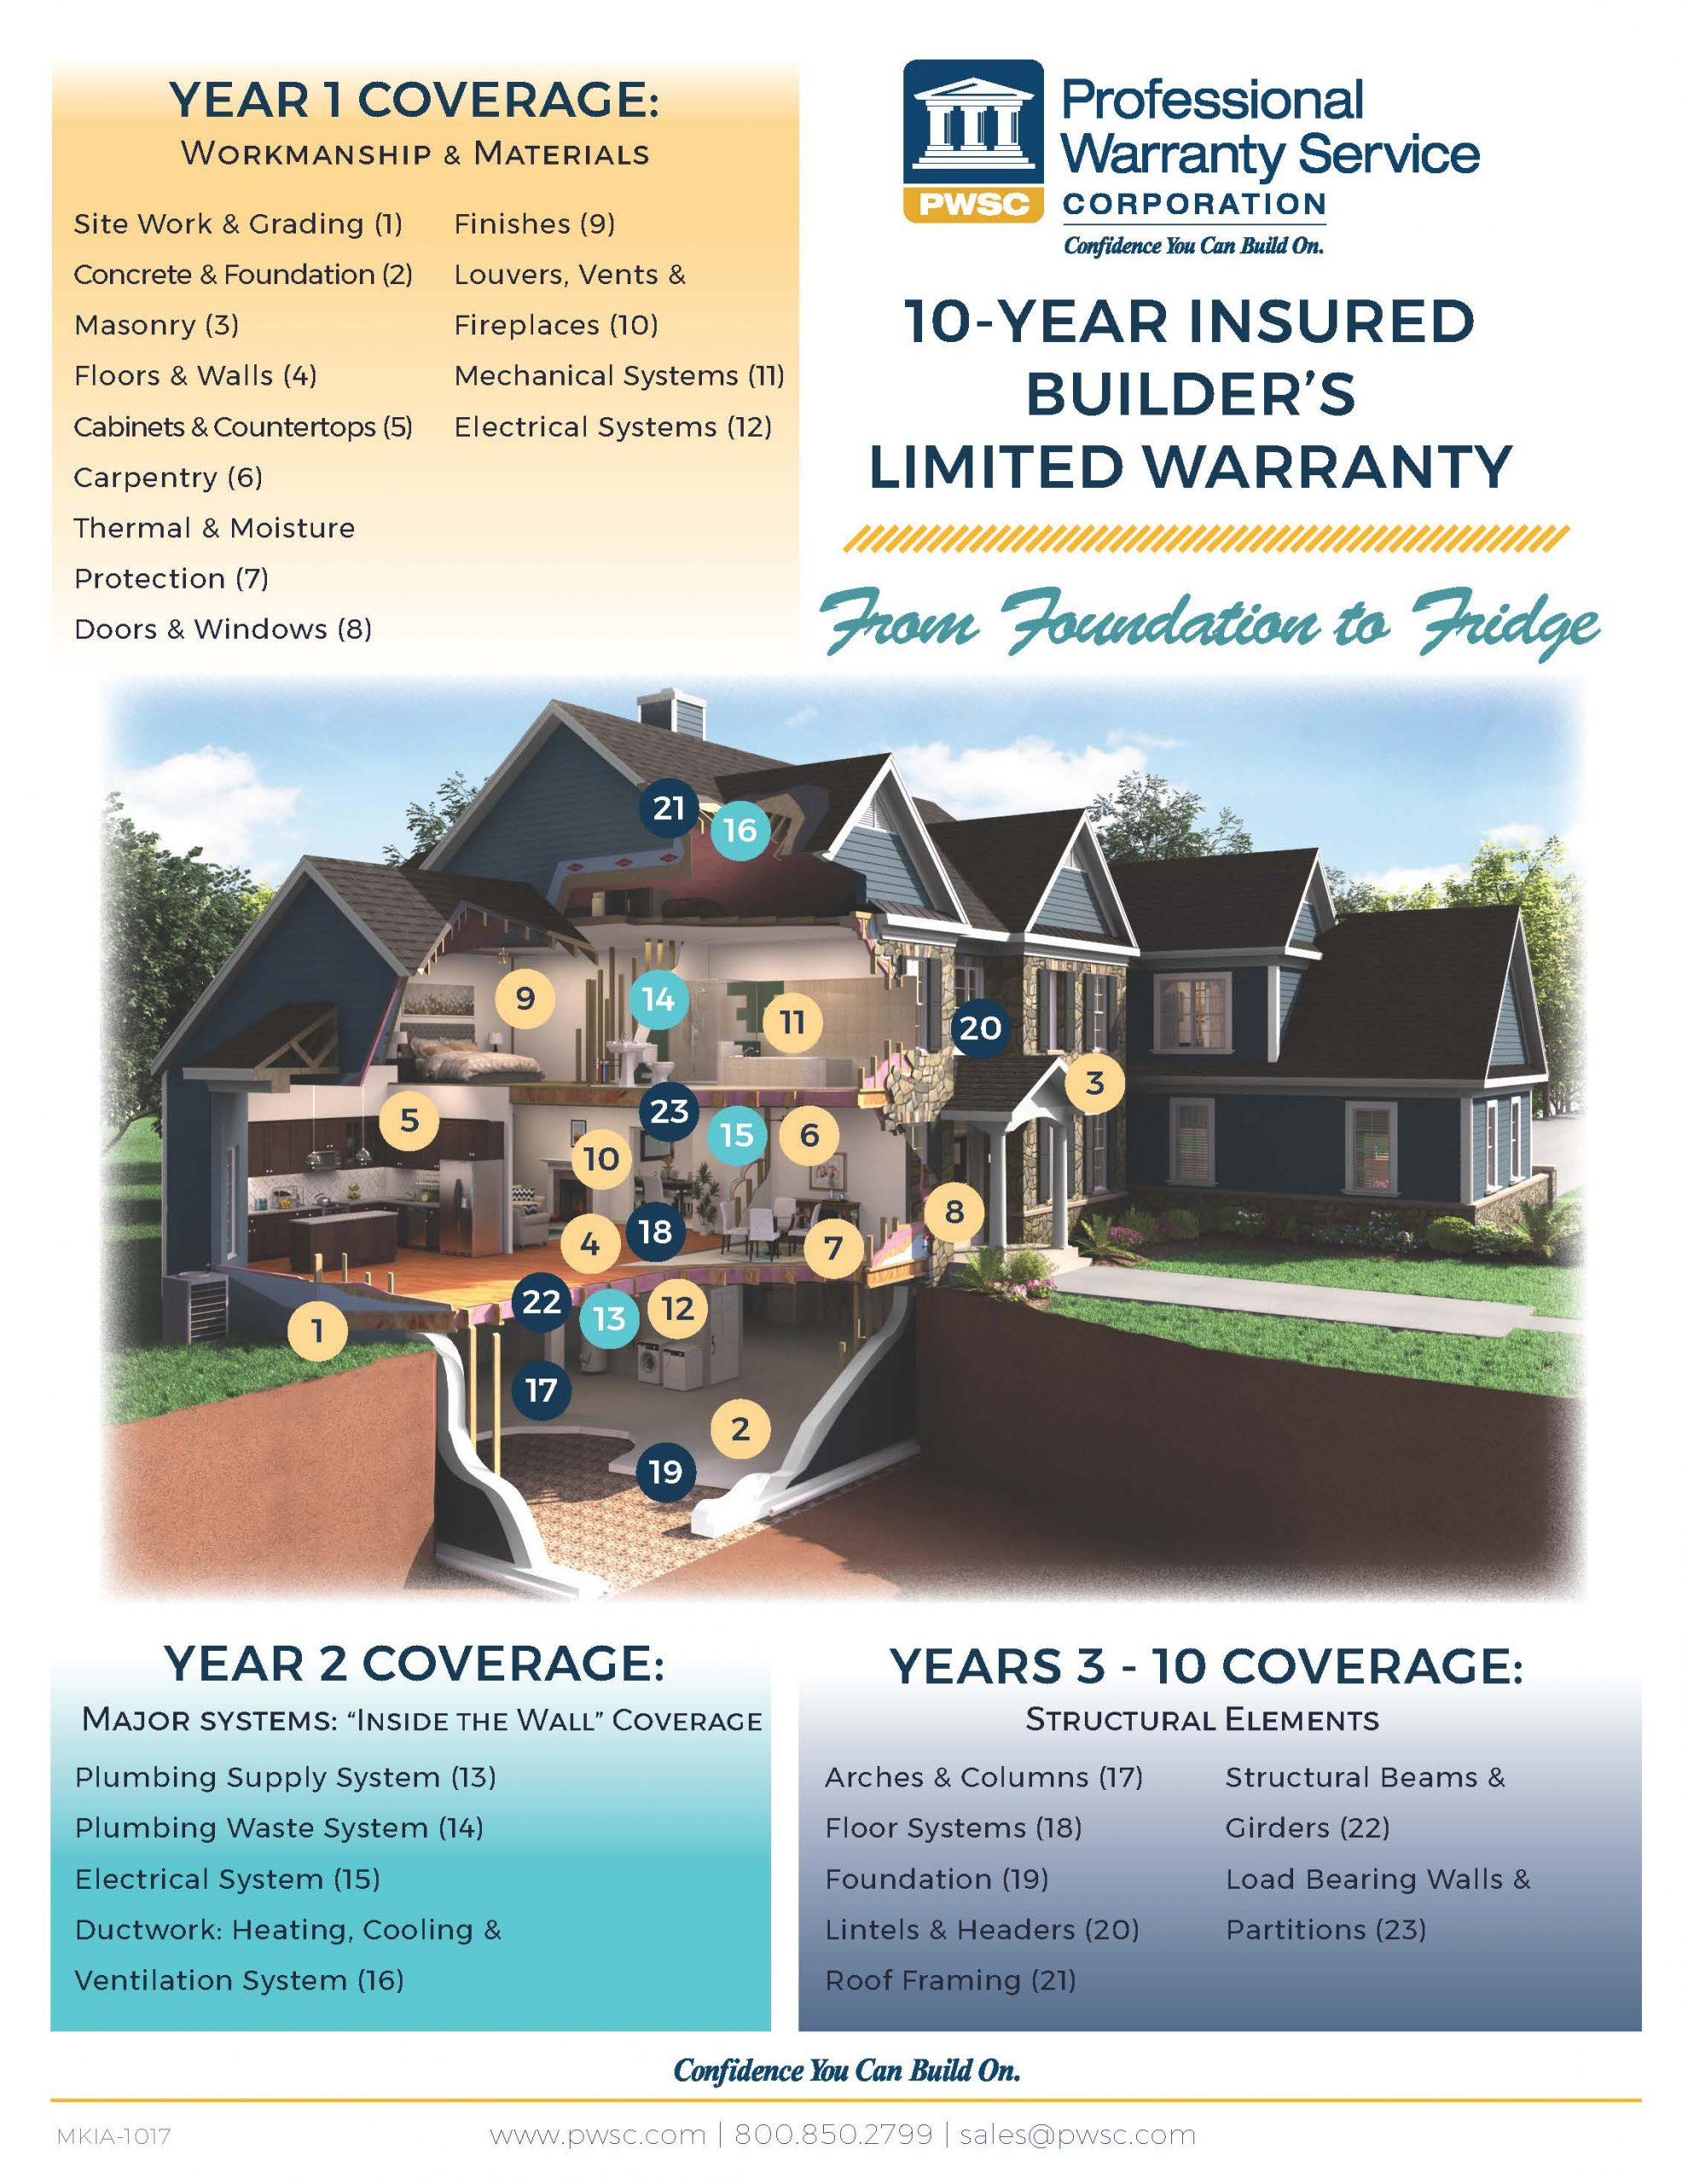 //kibhomes.com/wp-content/uploads/2020/04/PWSC-Signature-10-Year-Insured-Warranty-Coverage-Interactive-House-Oct2017-scaled.jpg